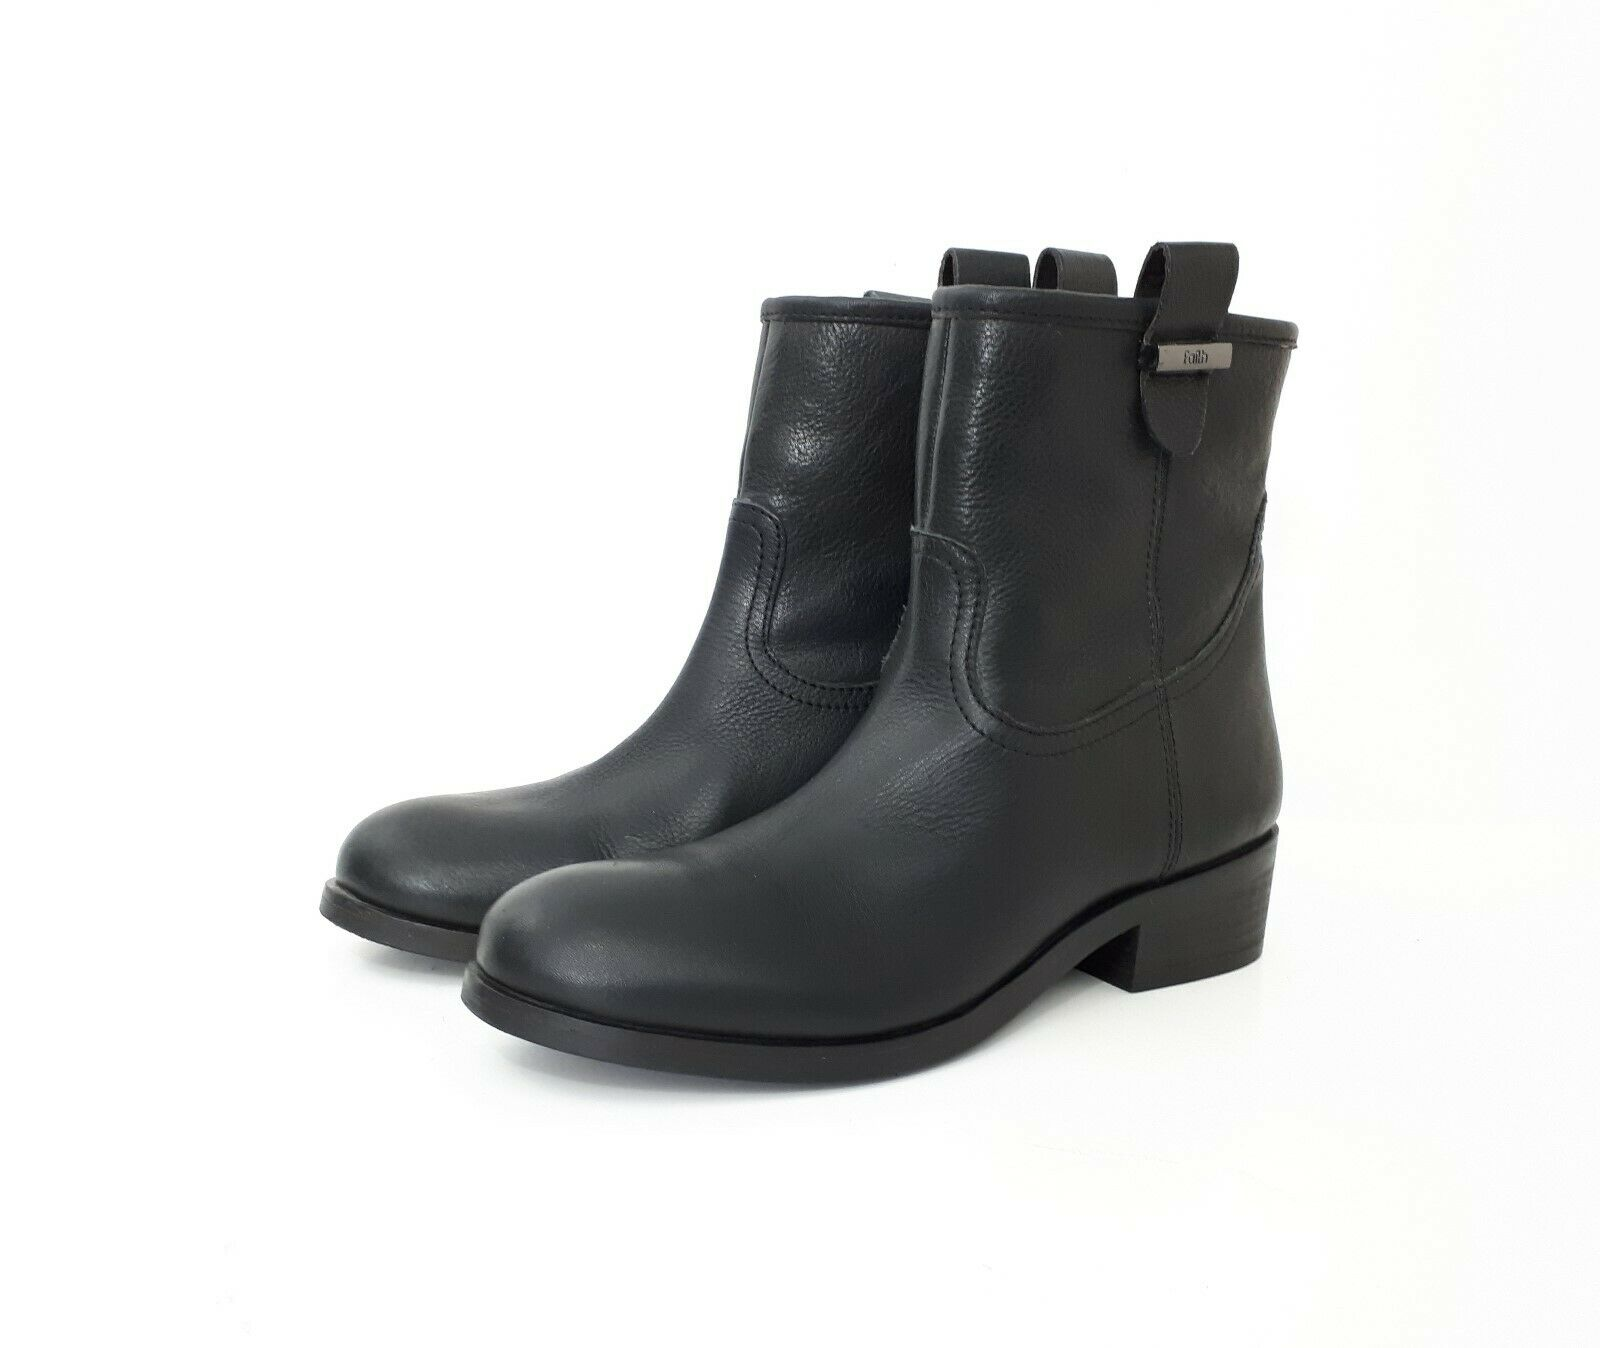 FAITH Black Genuine Leather Ankle Pull On Low Heel Boots 5 EU 38